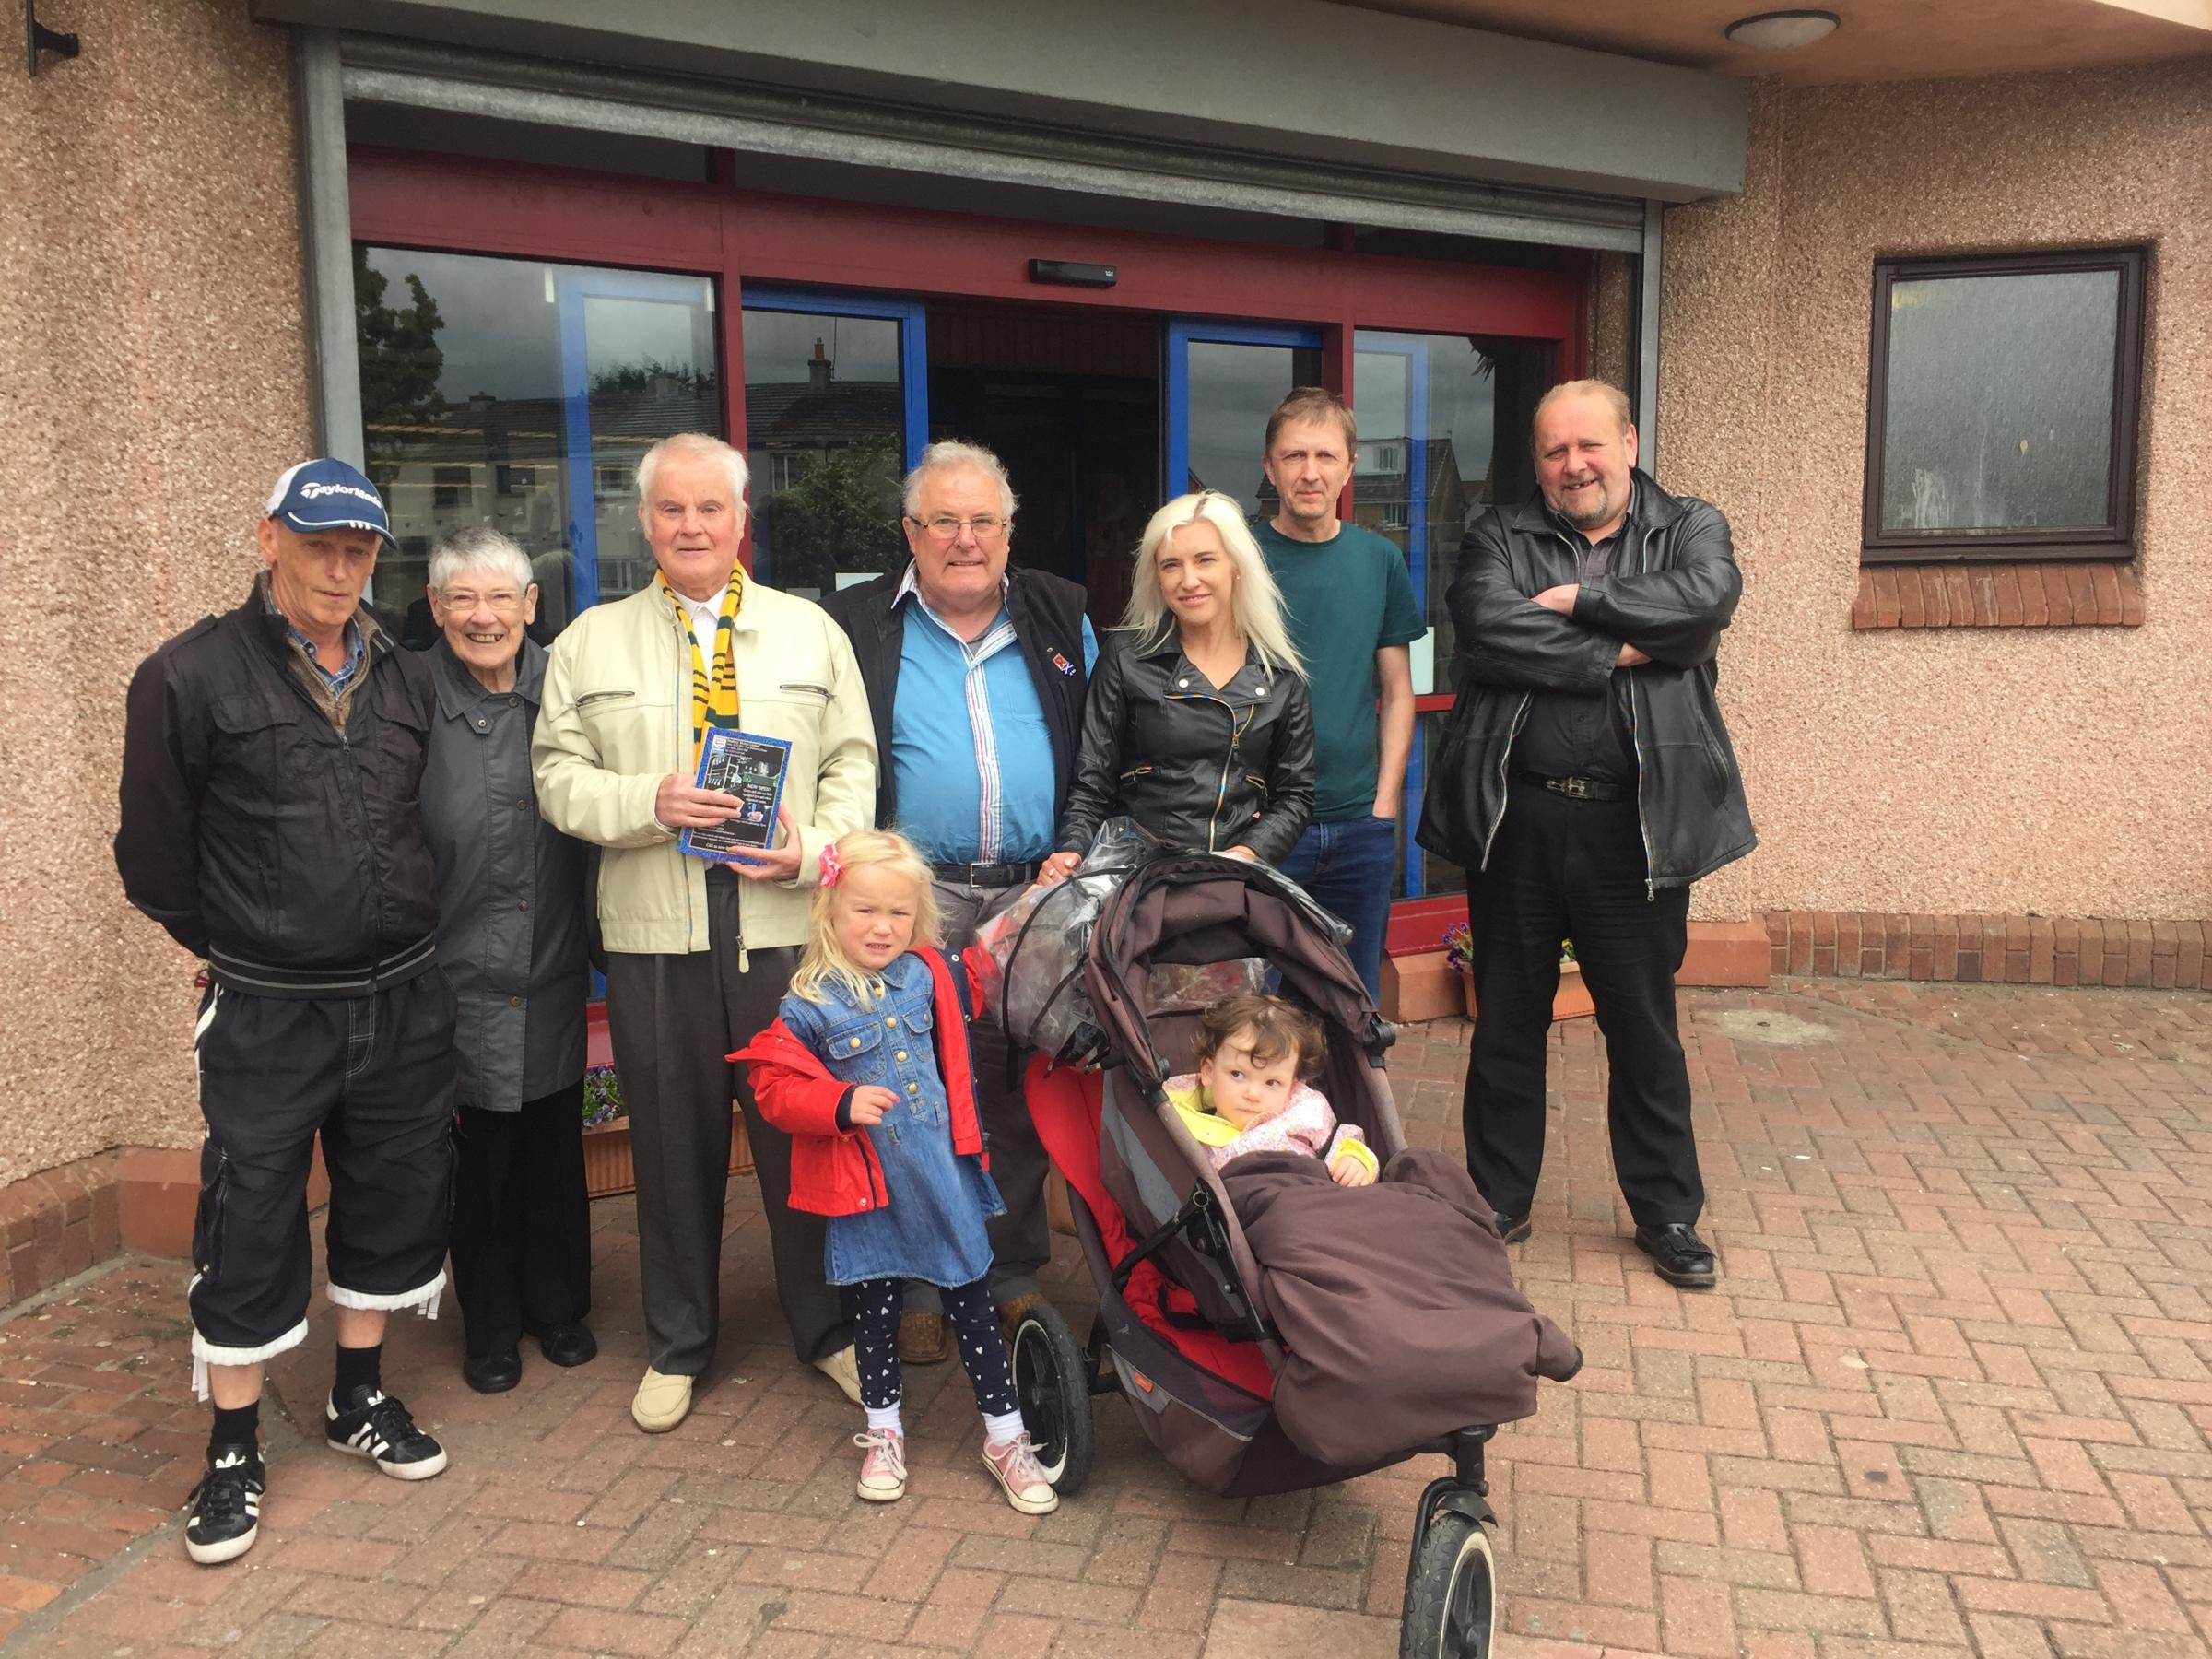 FROM LEFT: James Dixon, Jean Grant, Alexander Hood, Freddie McCreadie, Laura Bishop with Molly Hamilton and Kenzie McDonald, Eric Nisbet and Ian Donaldson outside Port Seton Library